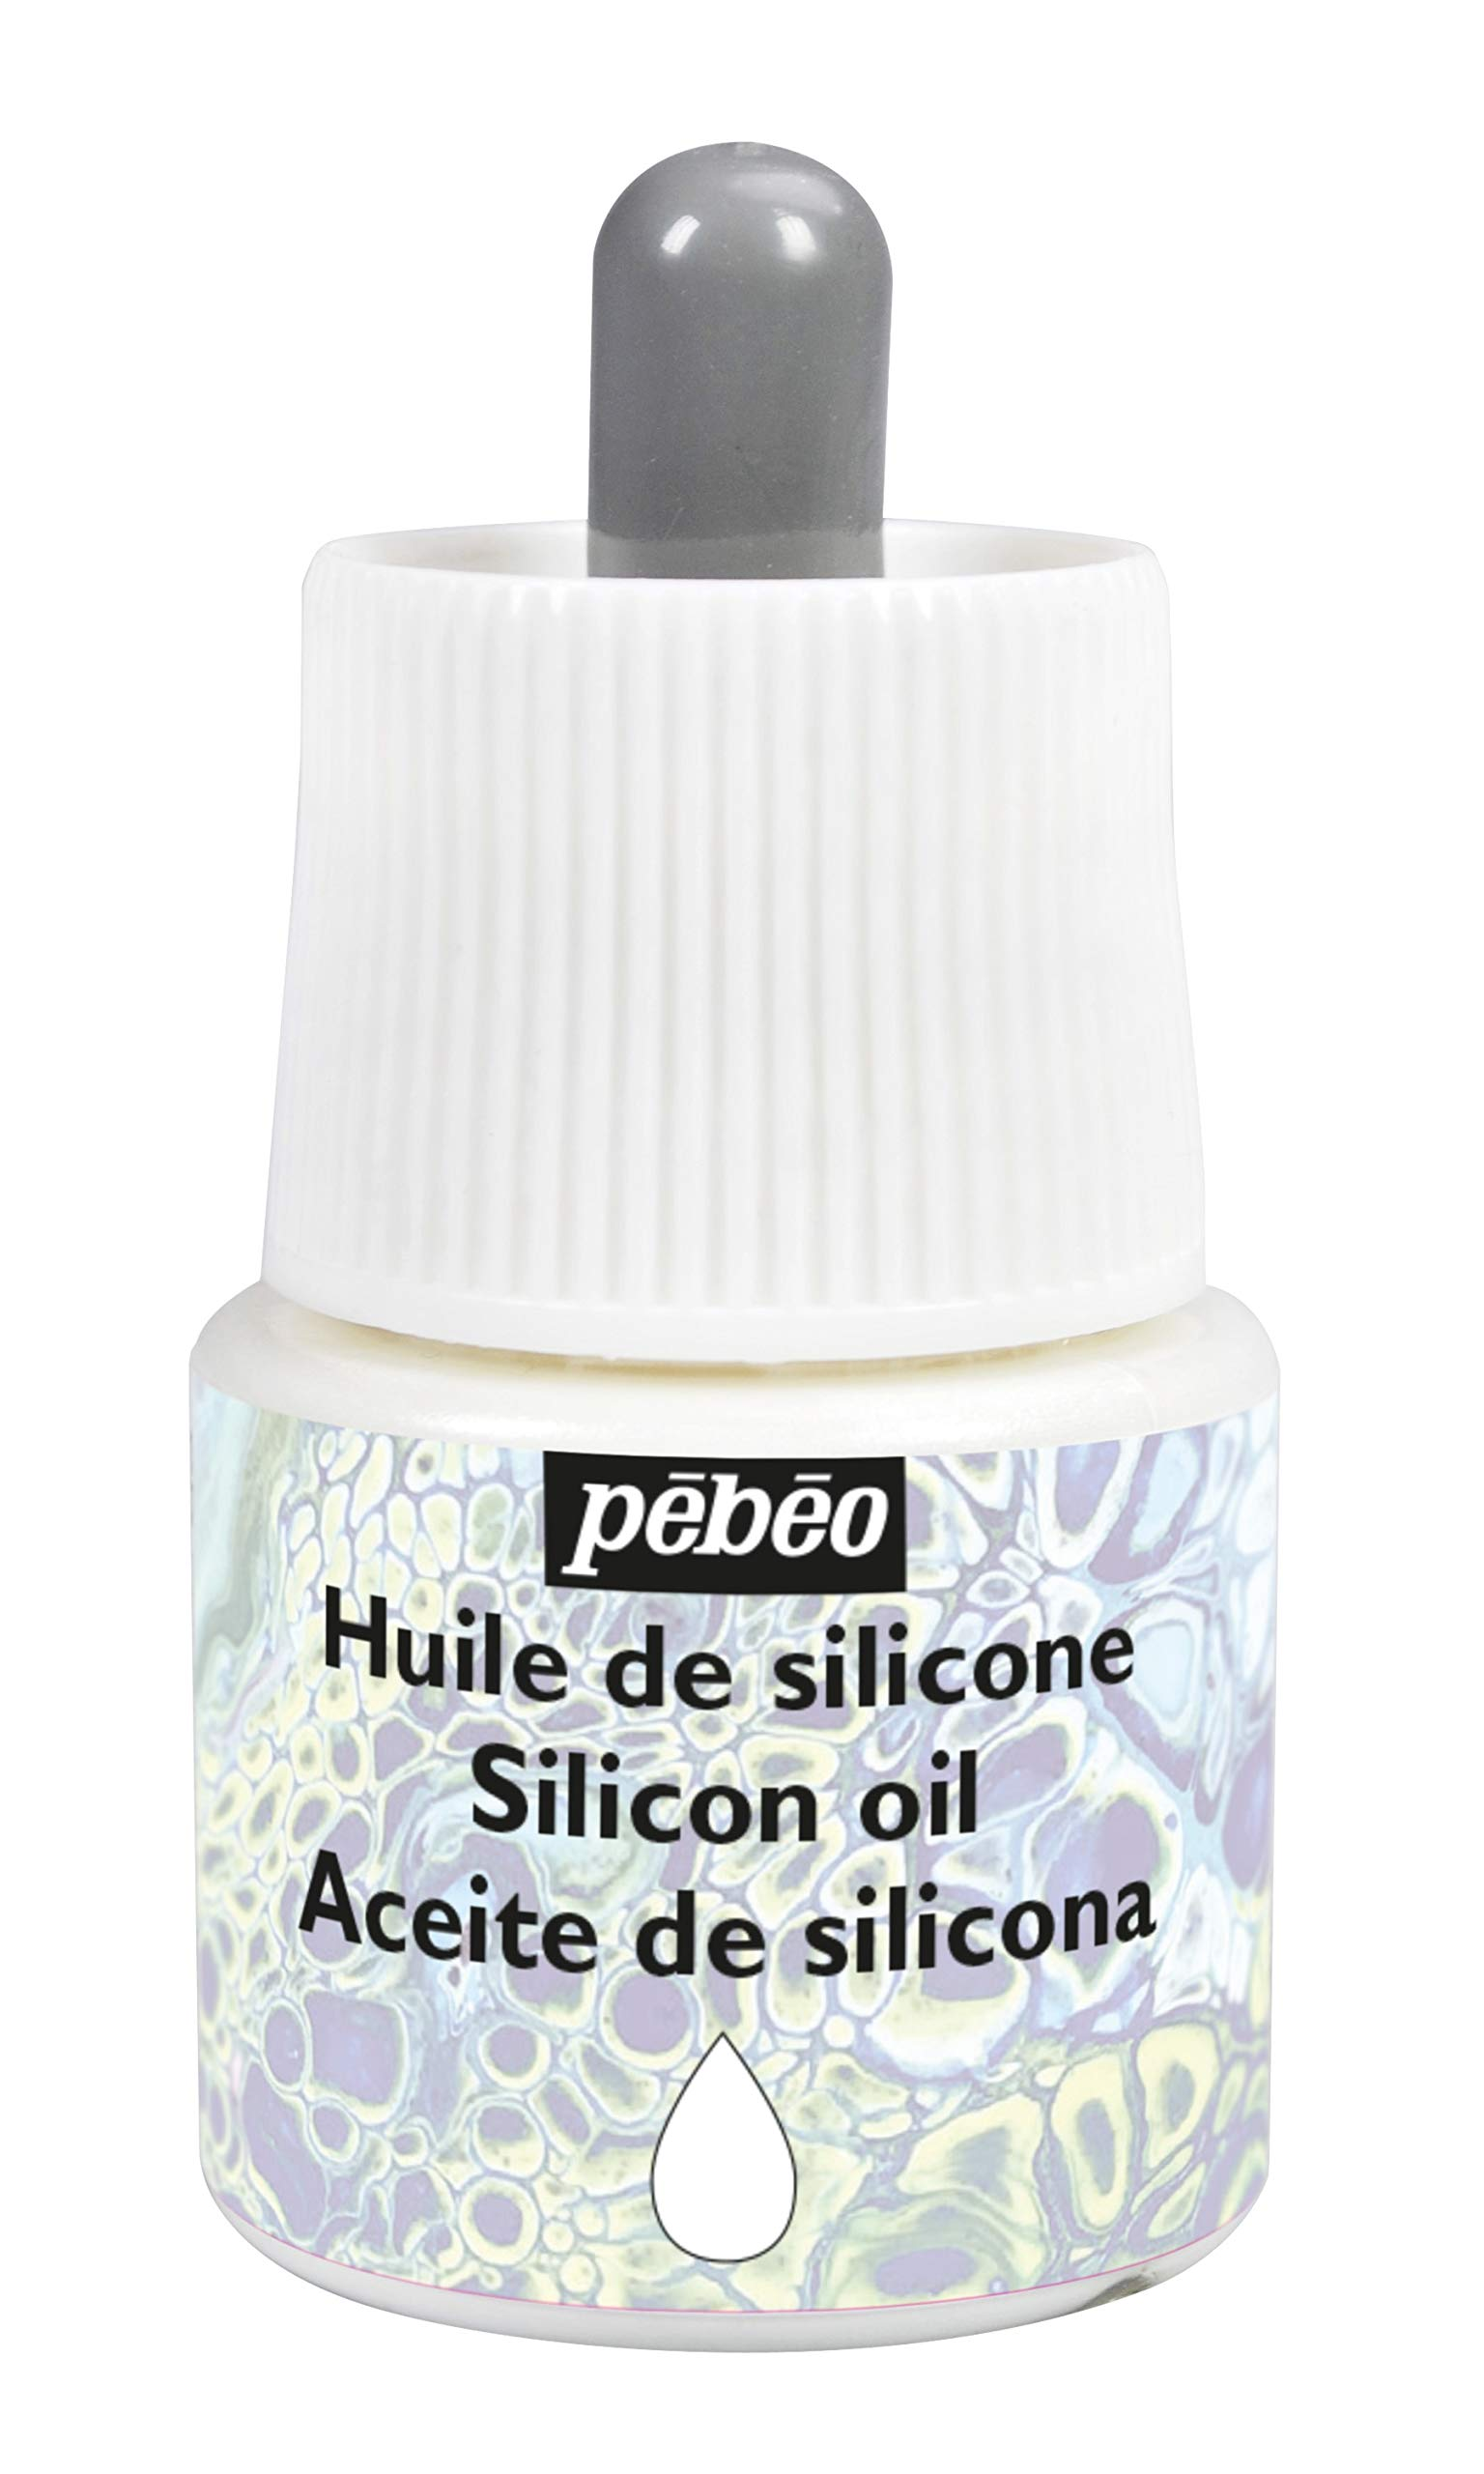 Pébéo Studio Acrylics-Oil Silicone-Auxiliary for Acrylic Painting-Pouring and Cell Making, 45 ml